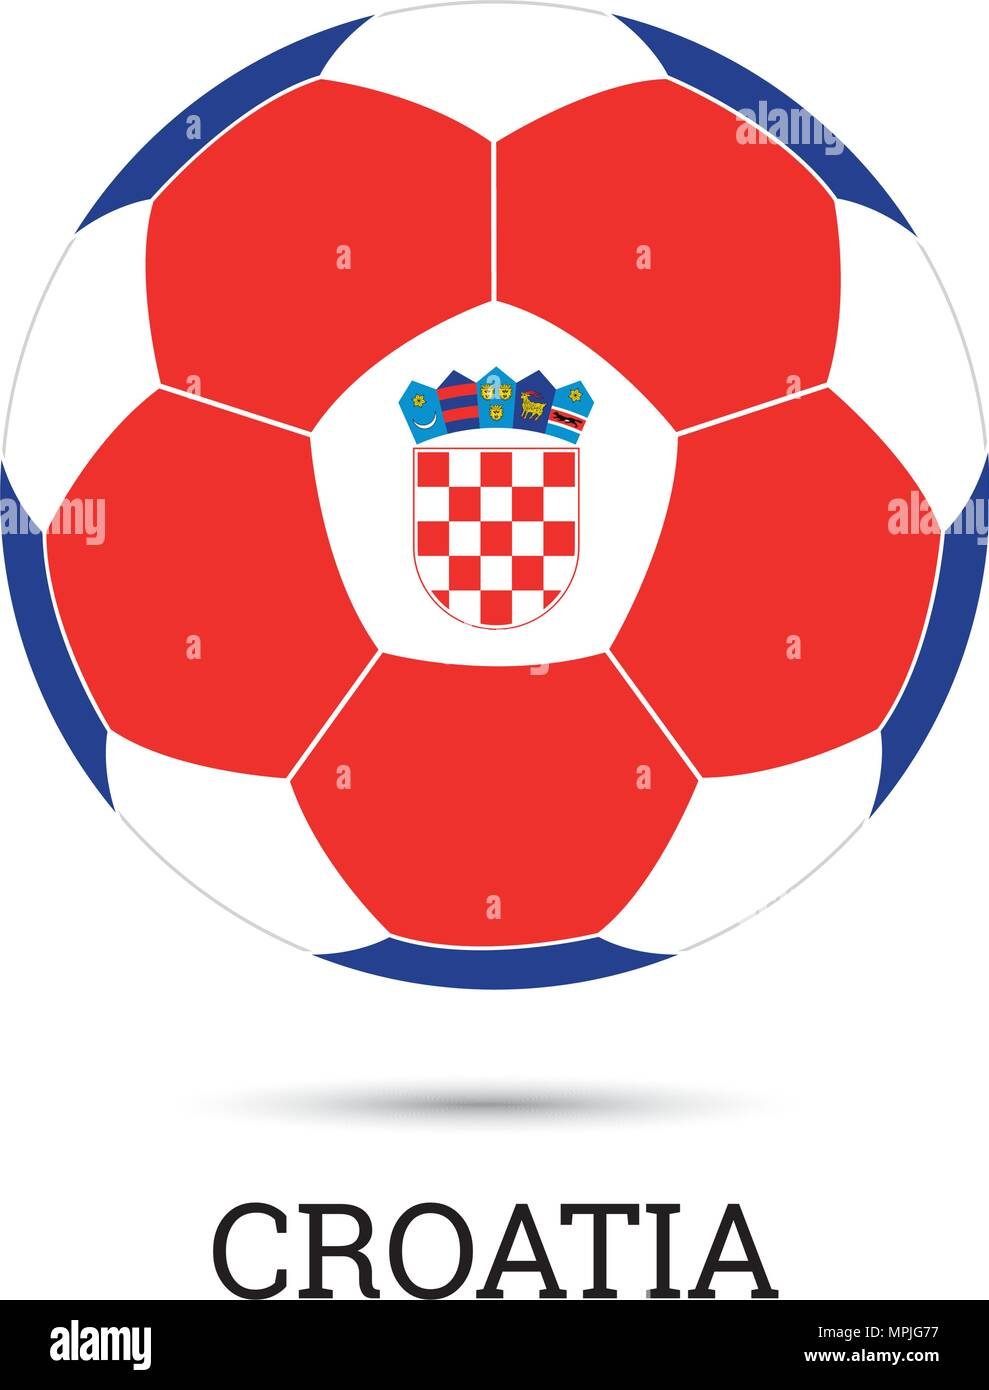 Soccer ball with Croatian national colors and emblem vector illustration 657c7d047